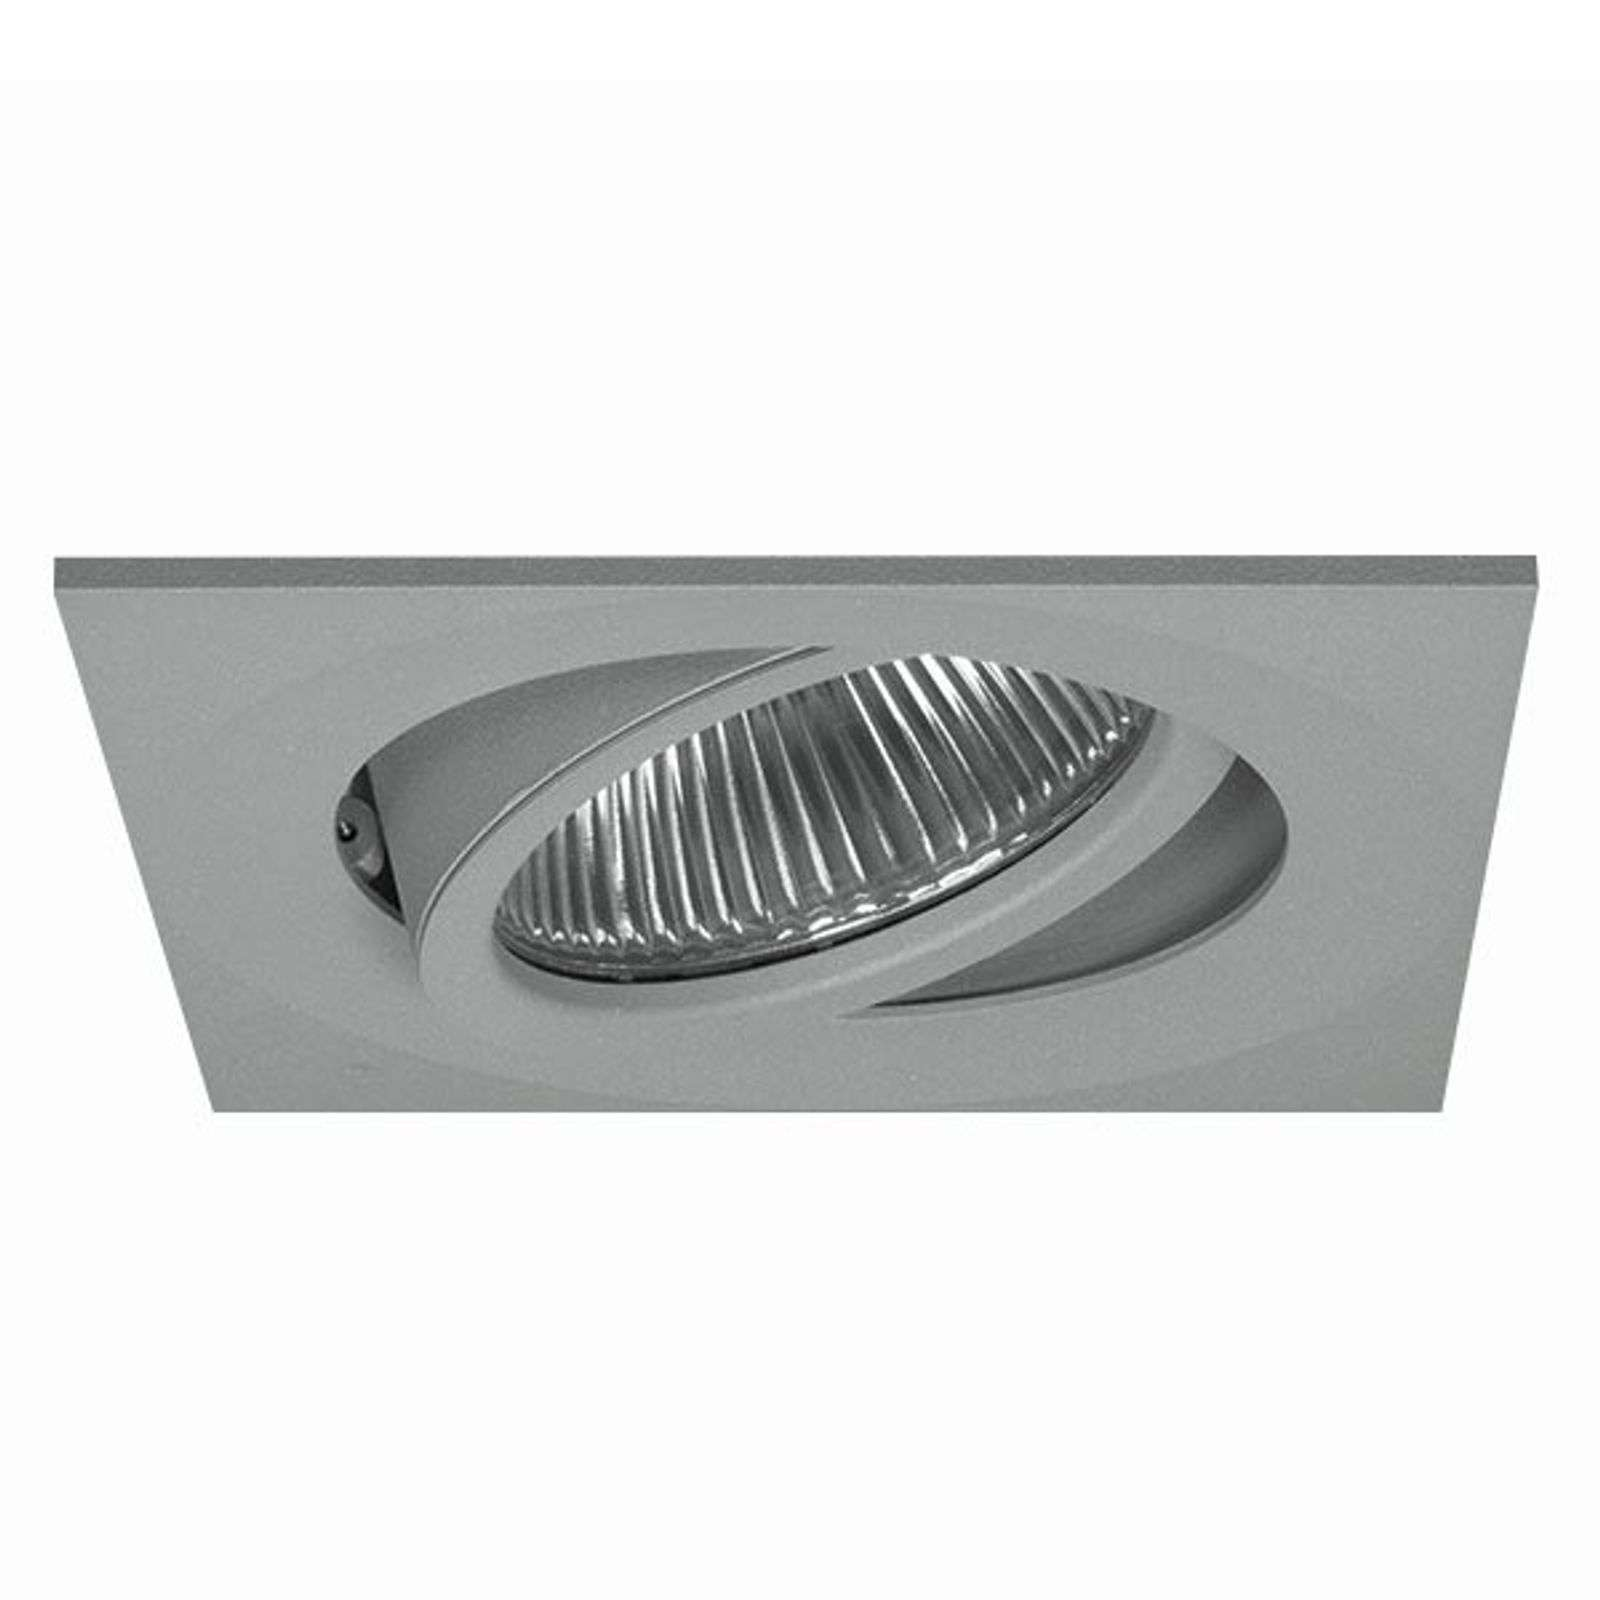 Spot encastrable LED CSA72 Square 35° 40W 4300lm